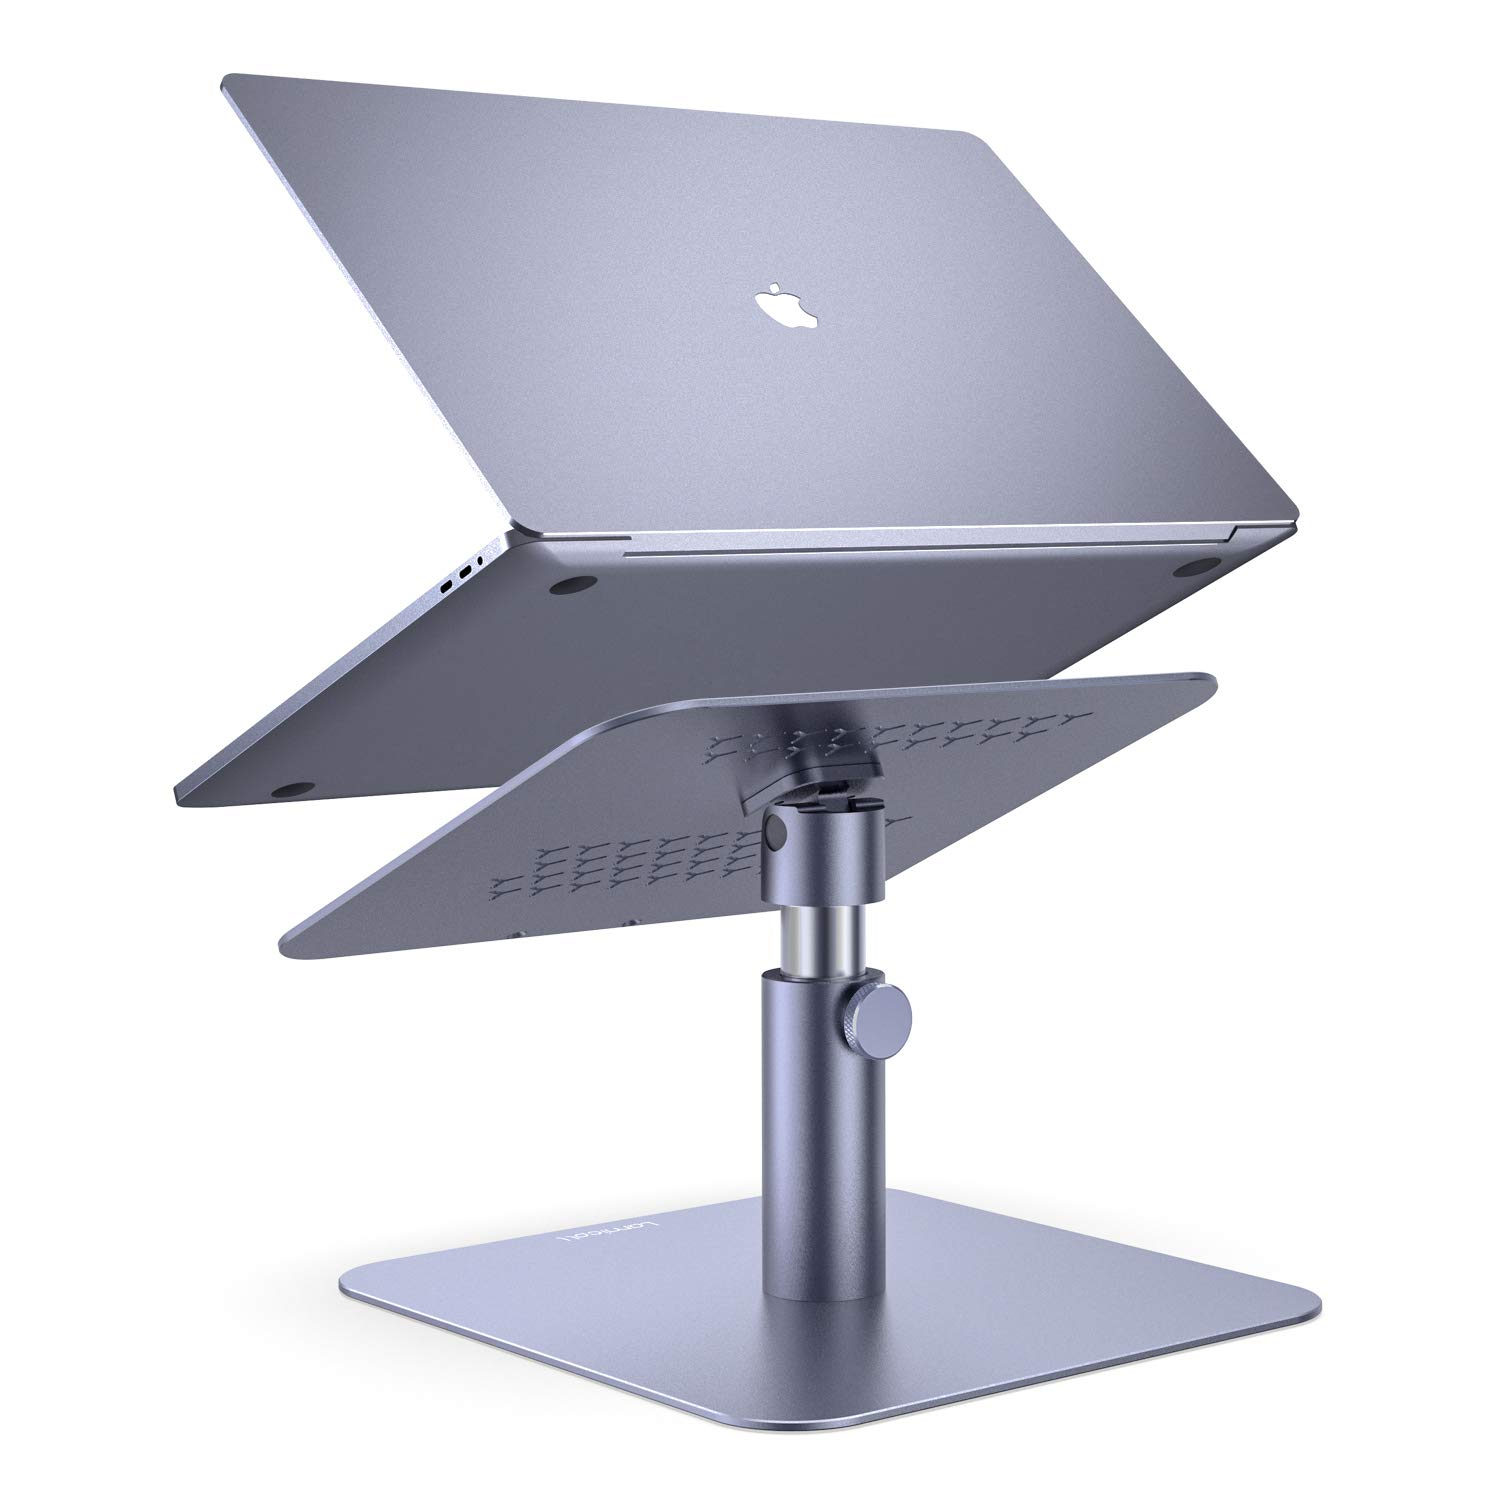 Adjustable Laptop Stand, Lamicall Laptop Riser : Multi-Angle Height Adjustable 360°Rotation Computer Notebook Stand Desktop Holder Compatible with Apple MacBook, Mac, Air, Pro, Dell XPS, HP(10-17'') by Lamicall